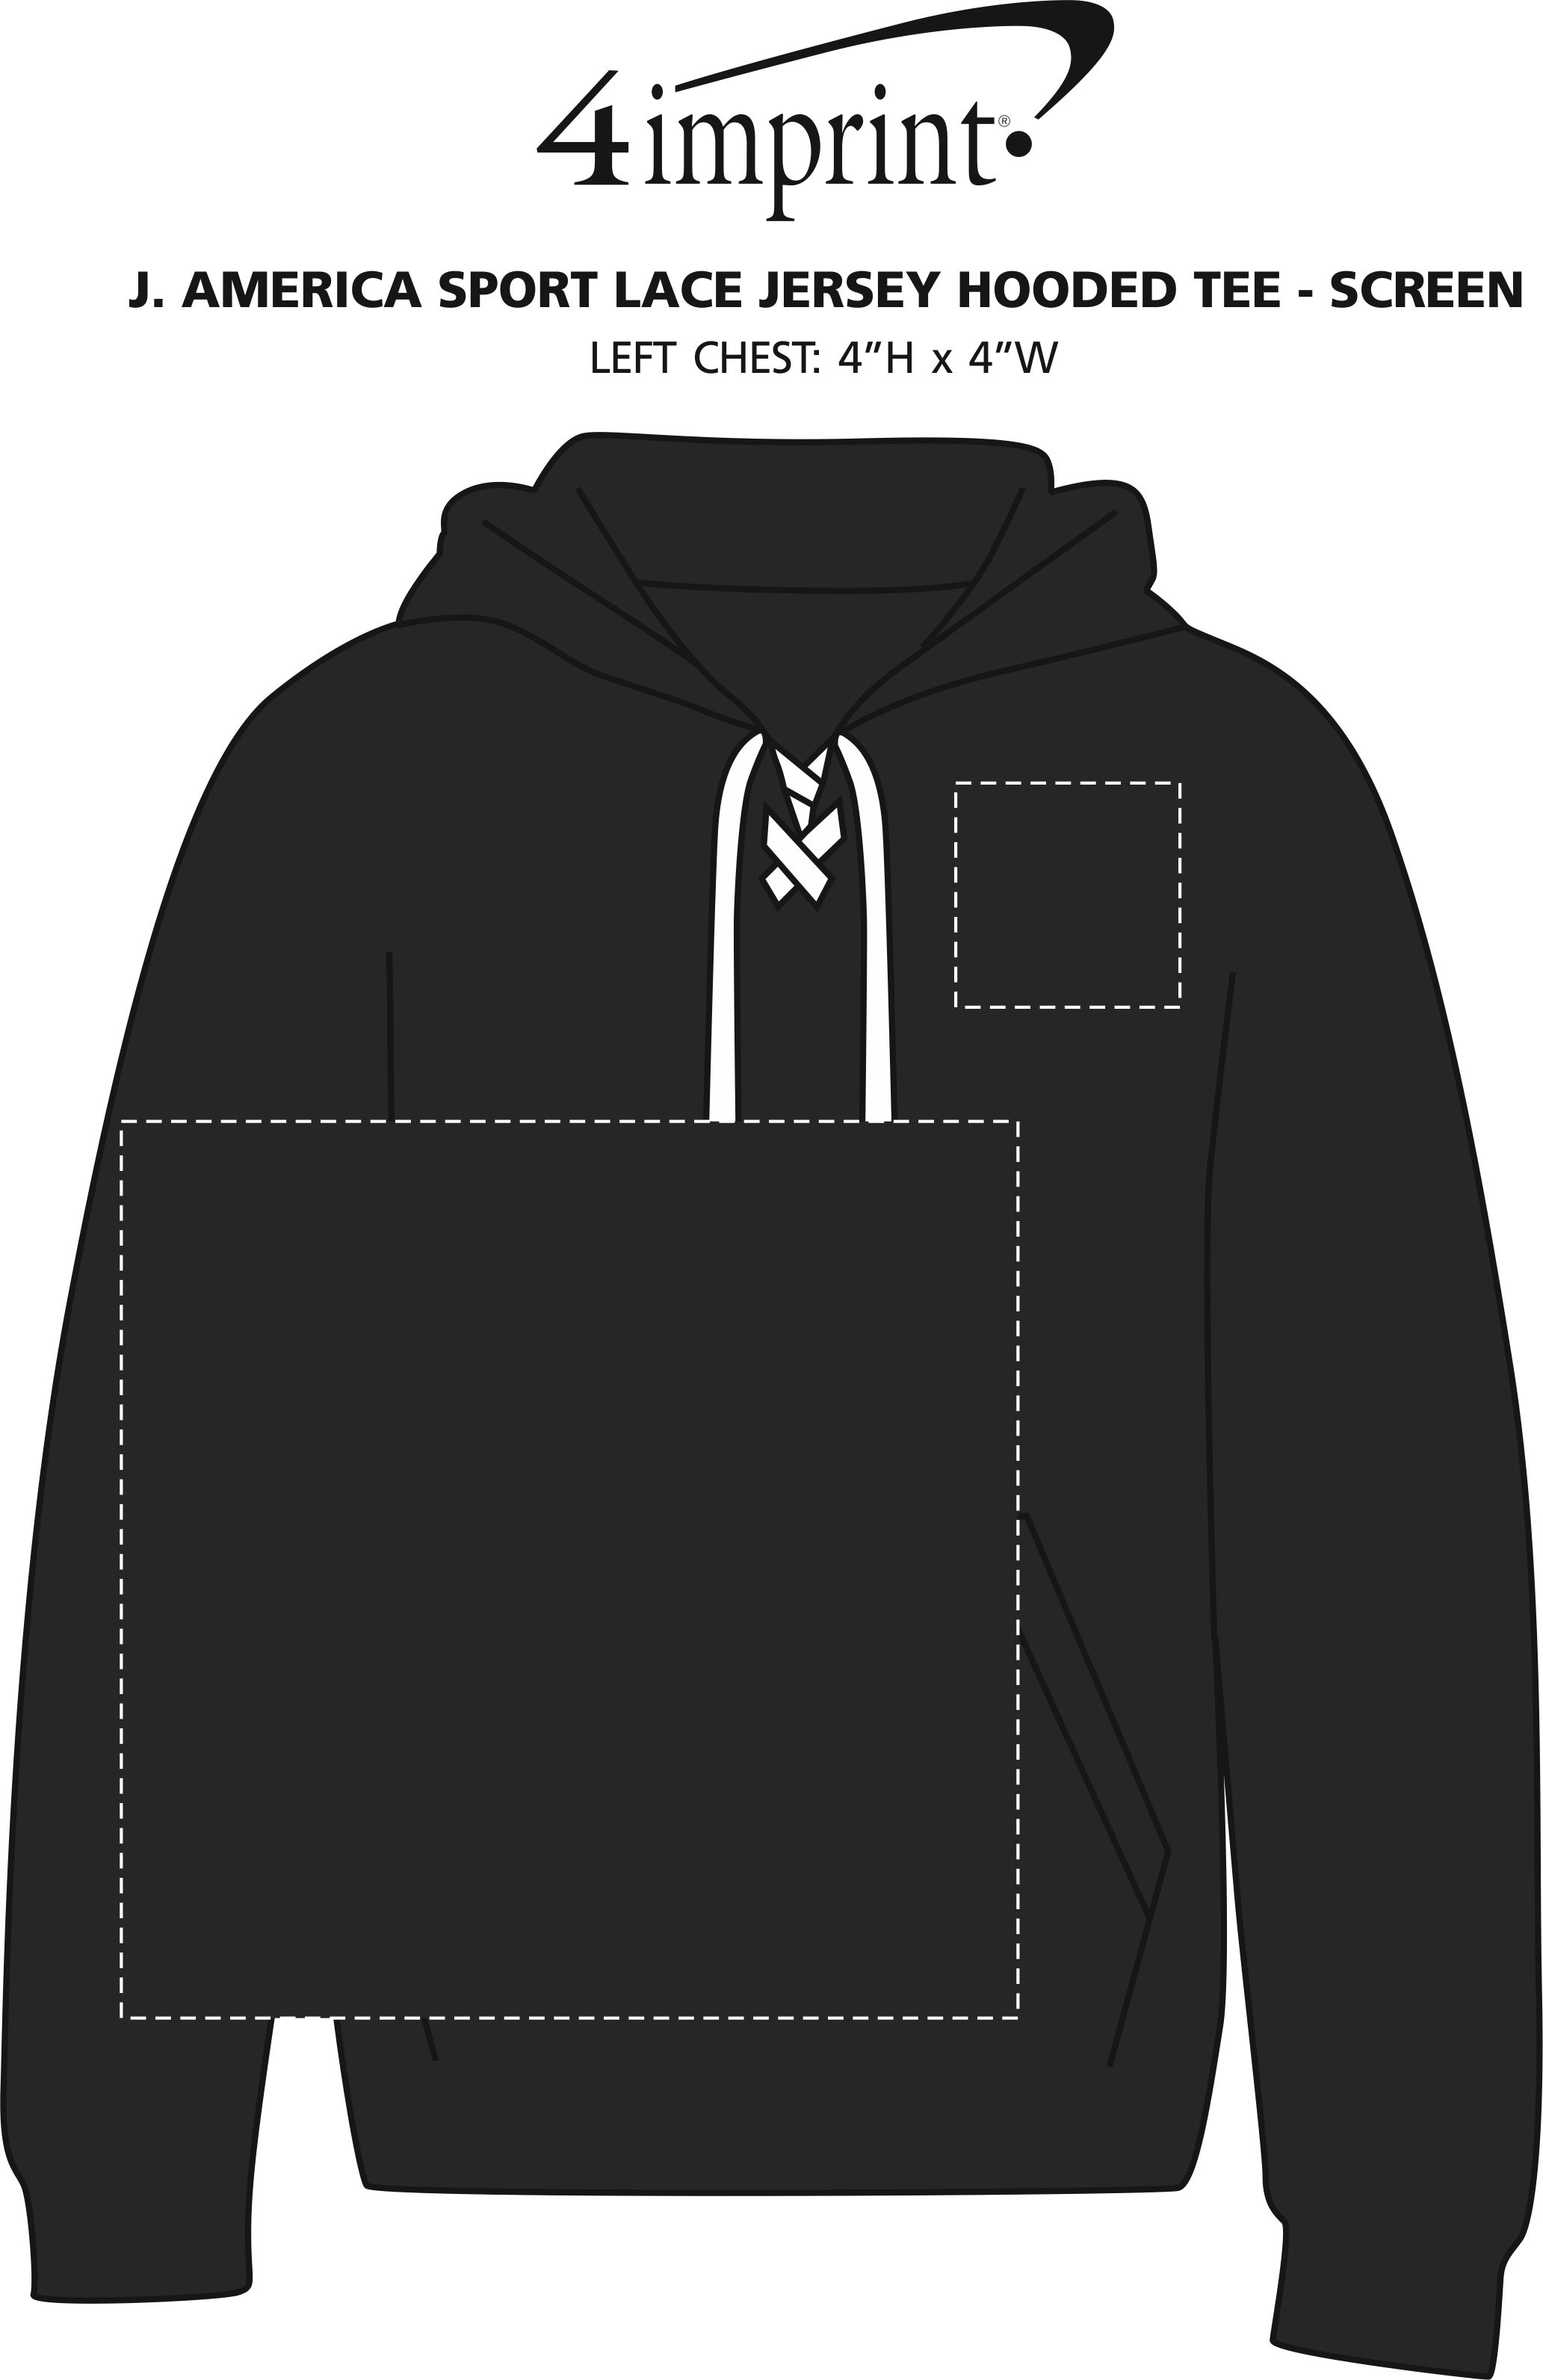 Imprint Area of J. America Sport Lace Jersey Hooded Tee - Screen